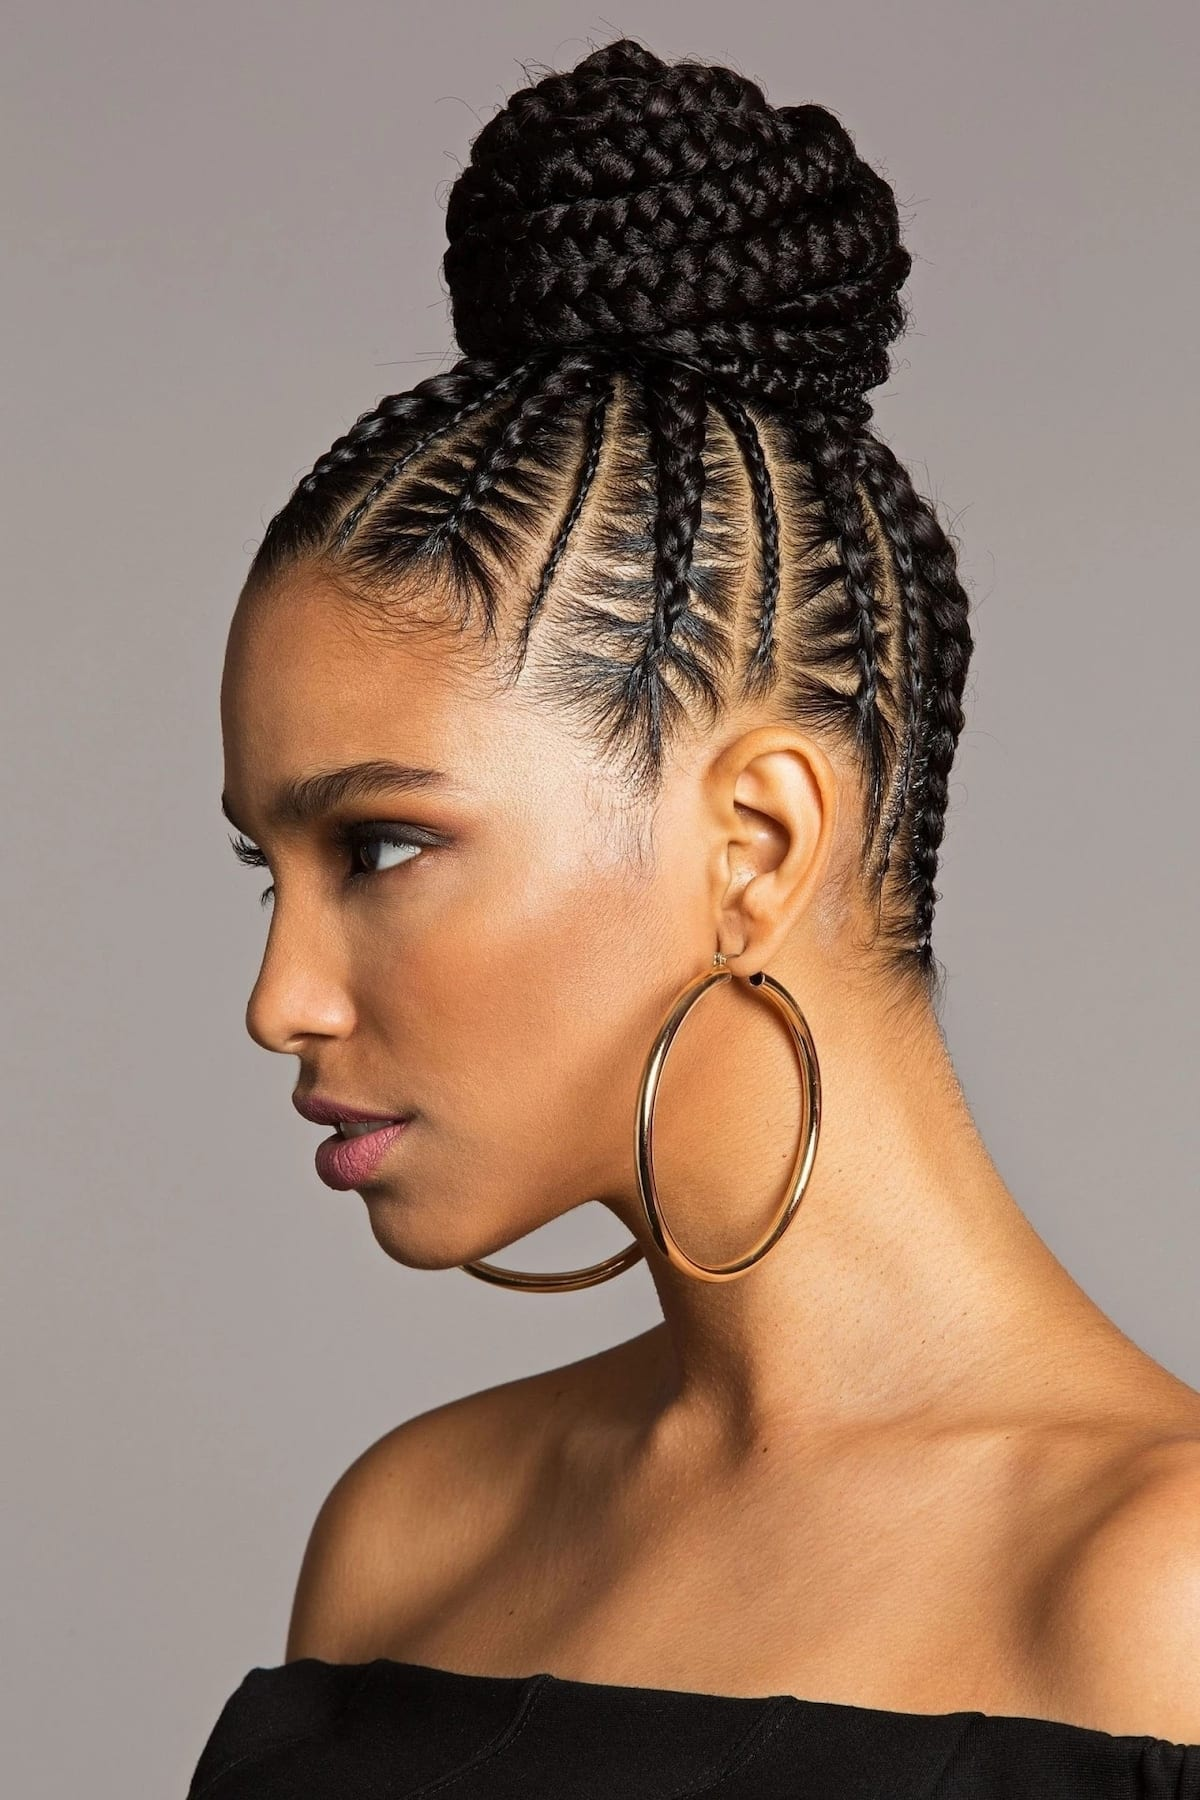 Braided Hairstyles for Short Hair Black braided hairstyles for short hair Pictures of braided hairstyles for short hair